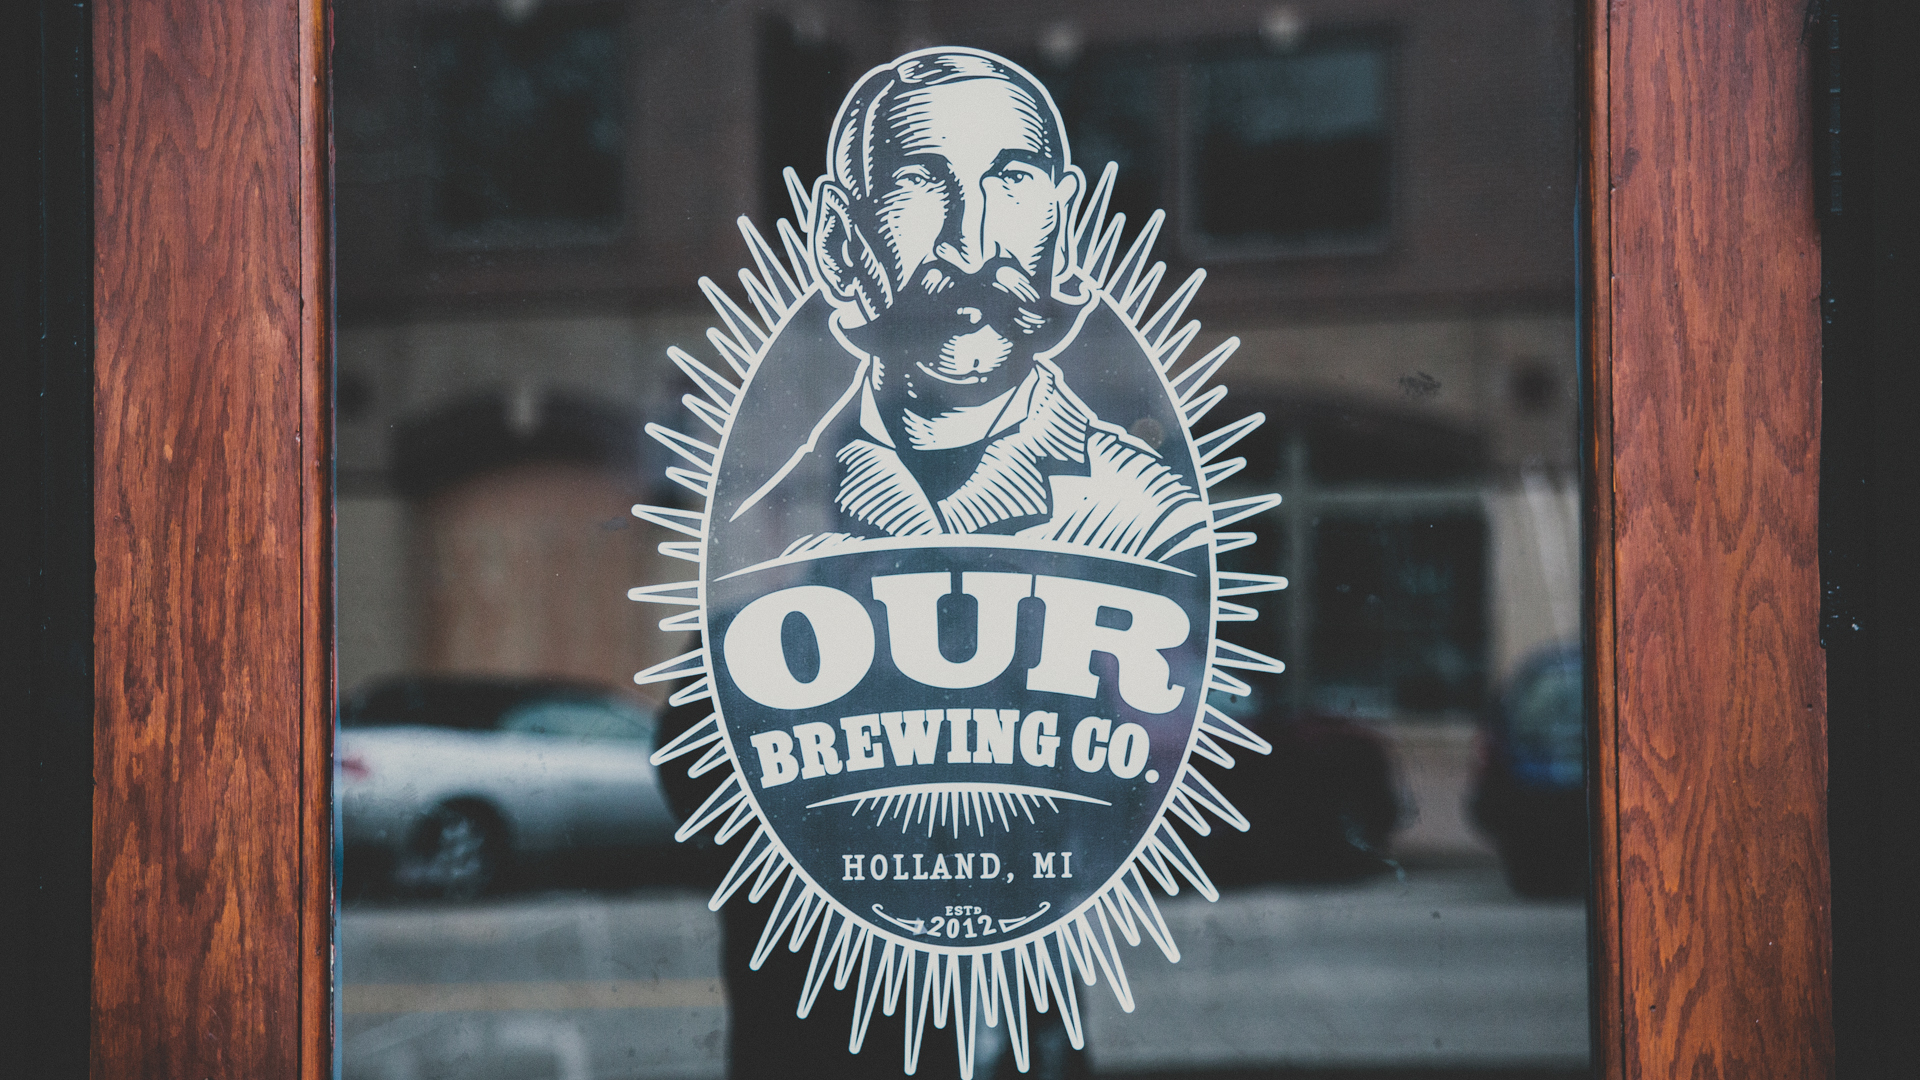 The most boss logo in craft beer.